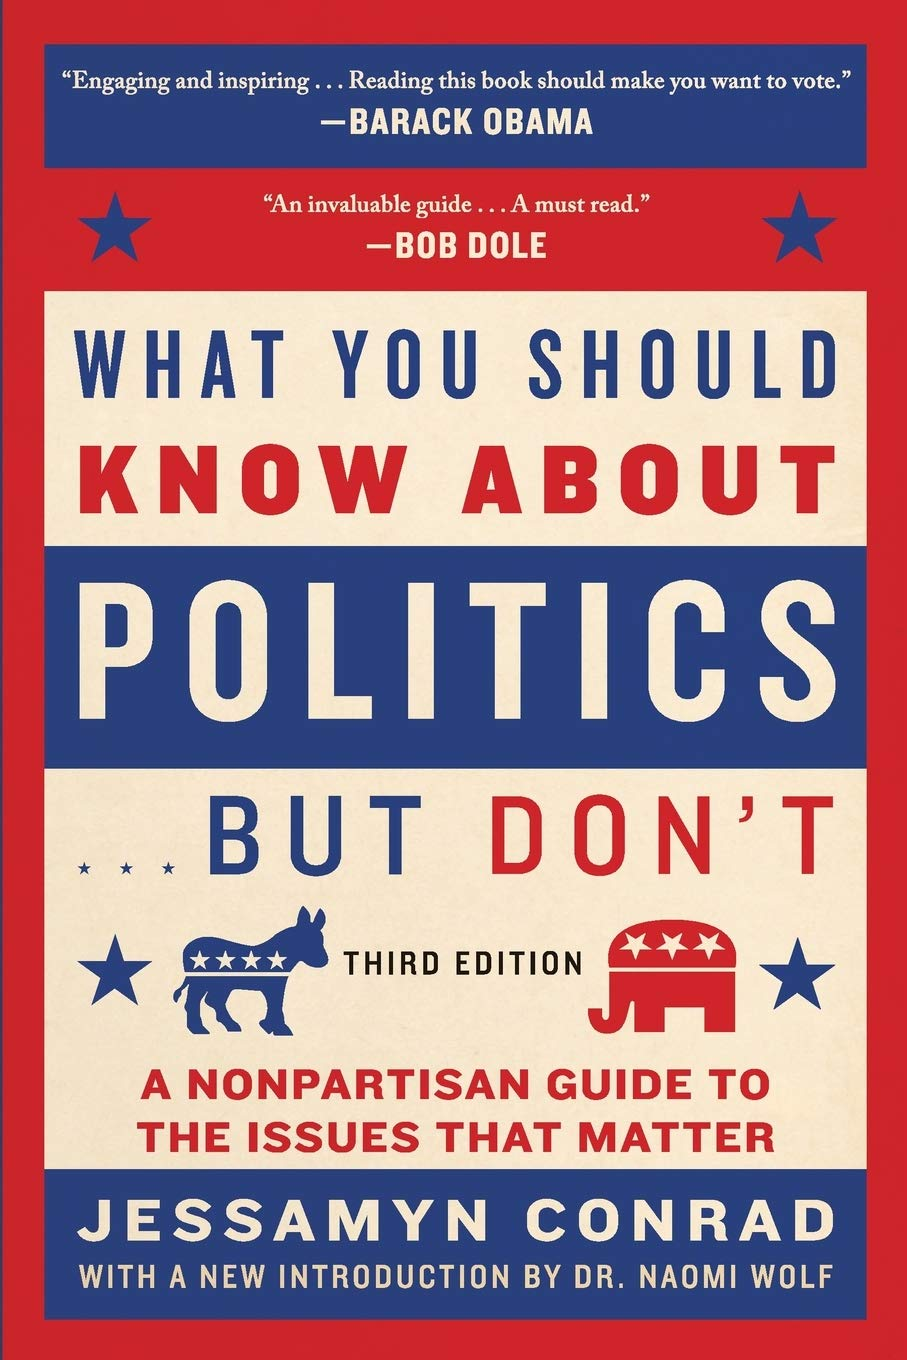 What You Should Know About Politics... But Don't: A Nonpartisan Guide to the Issues That Matter